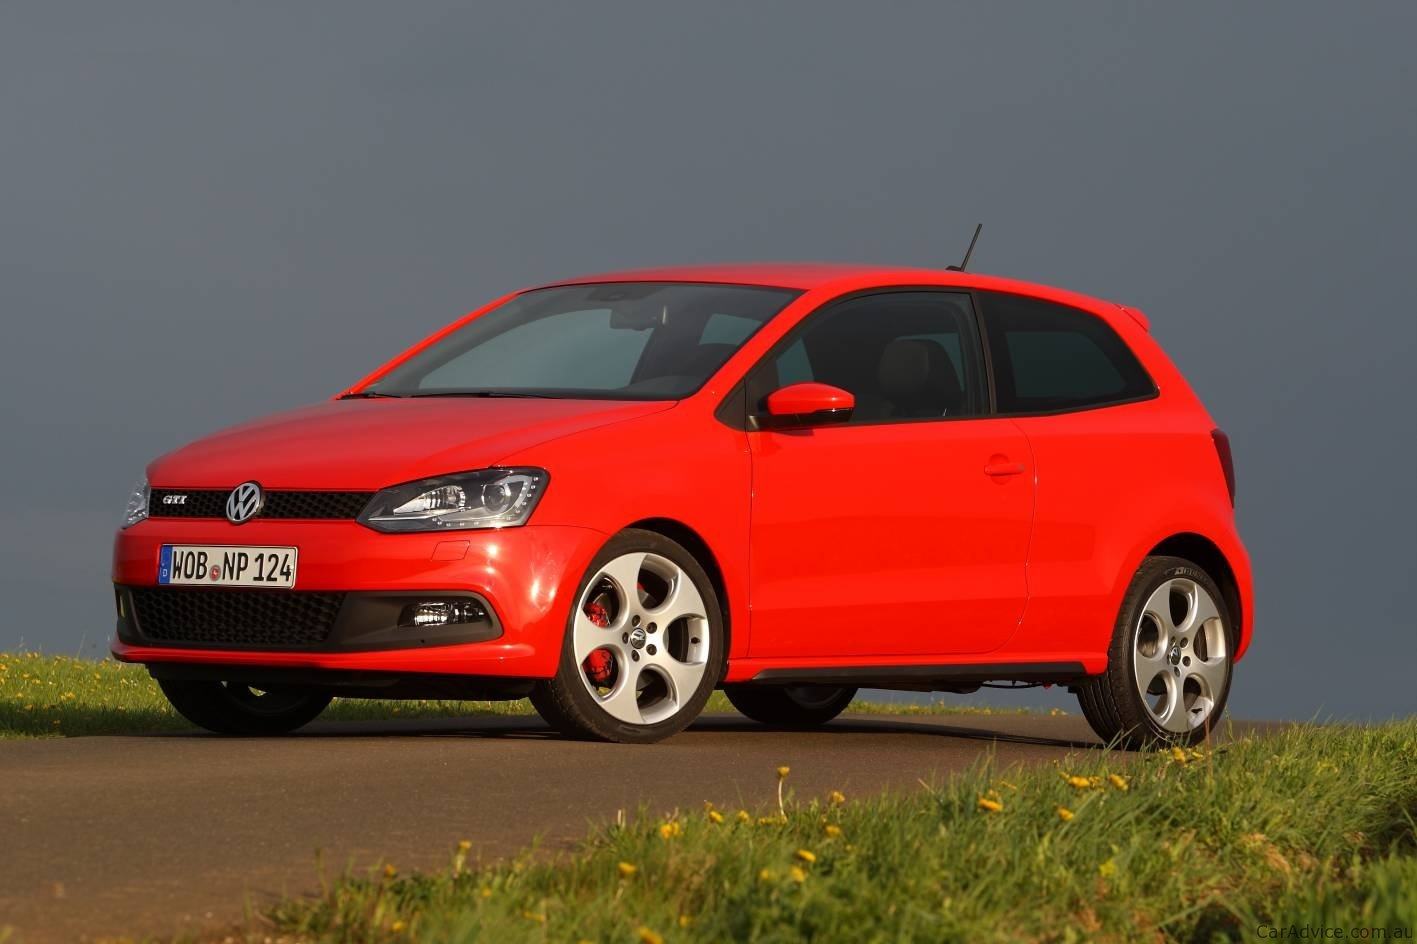 2011 Volkswagen Polo Gti Launched In Australia Photos 1